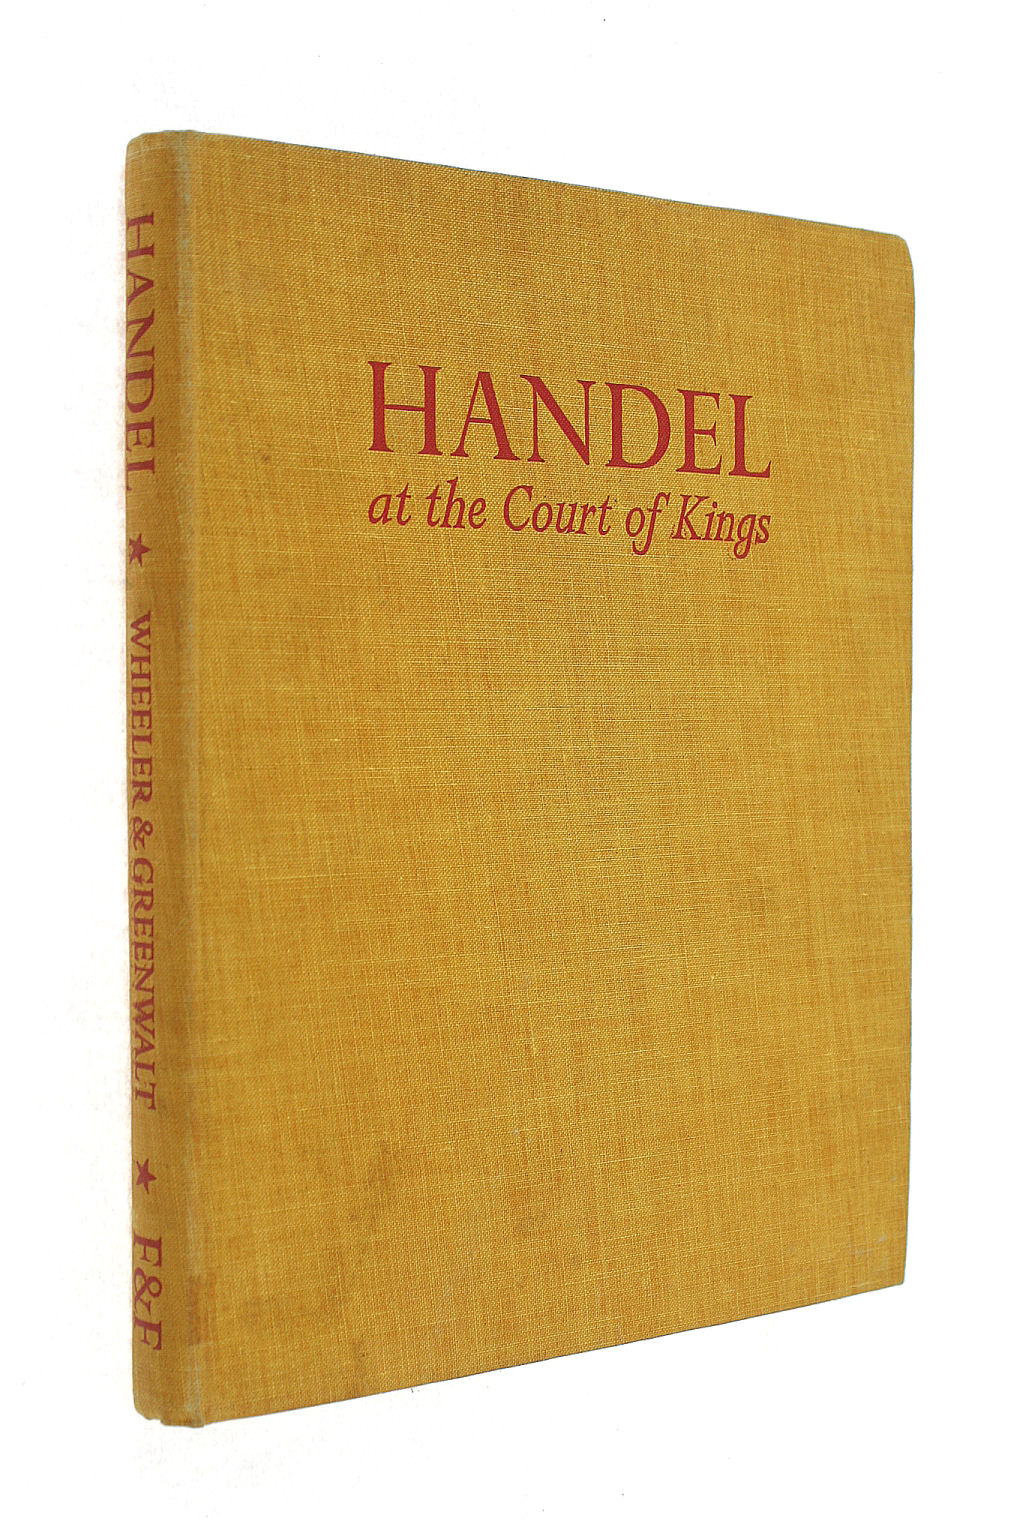 Image for Handel at the court of kings